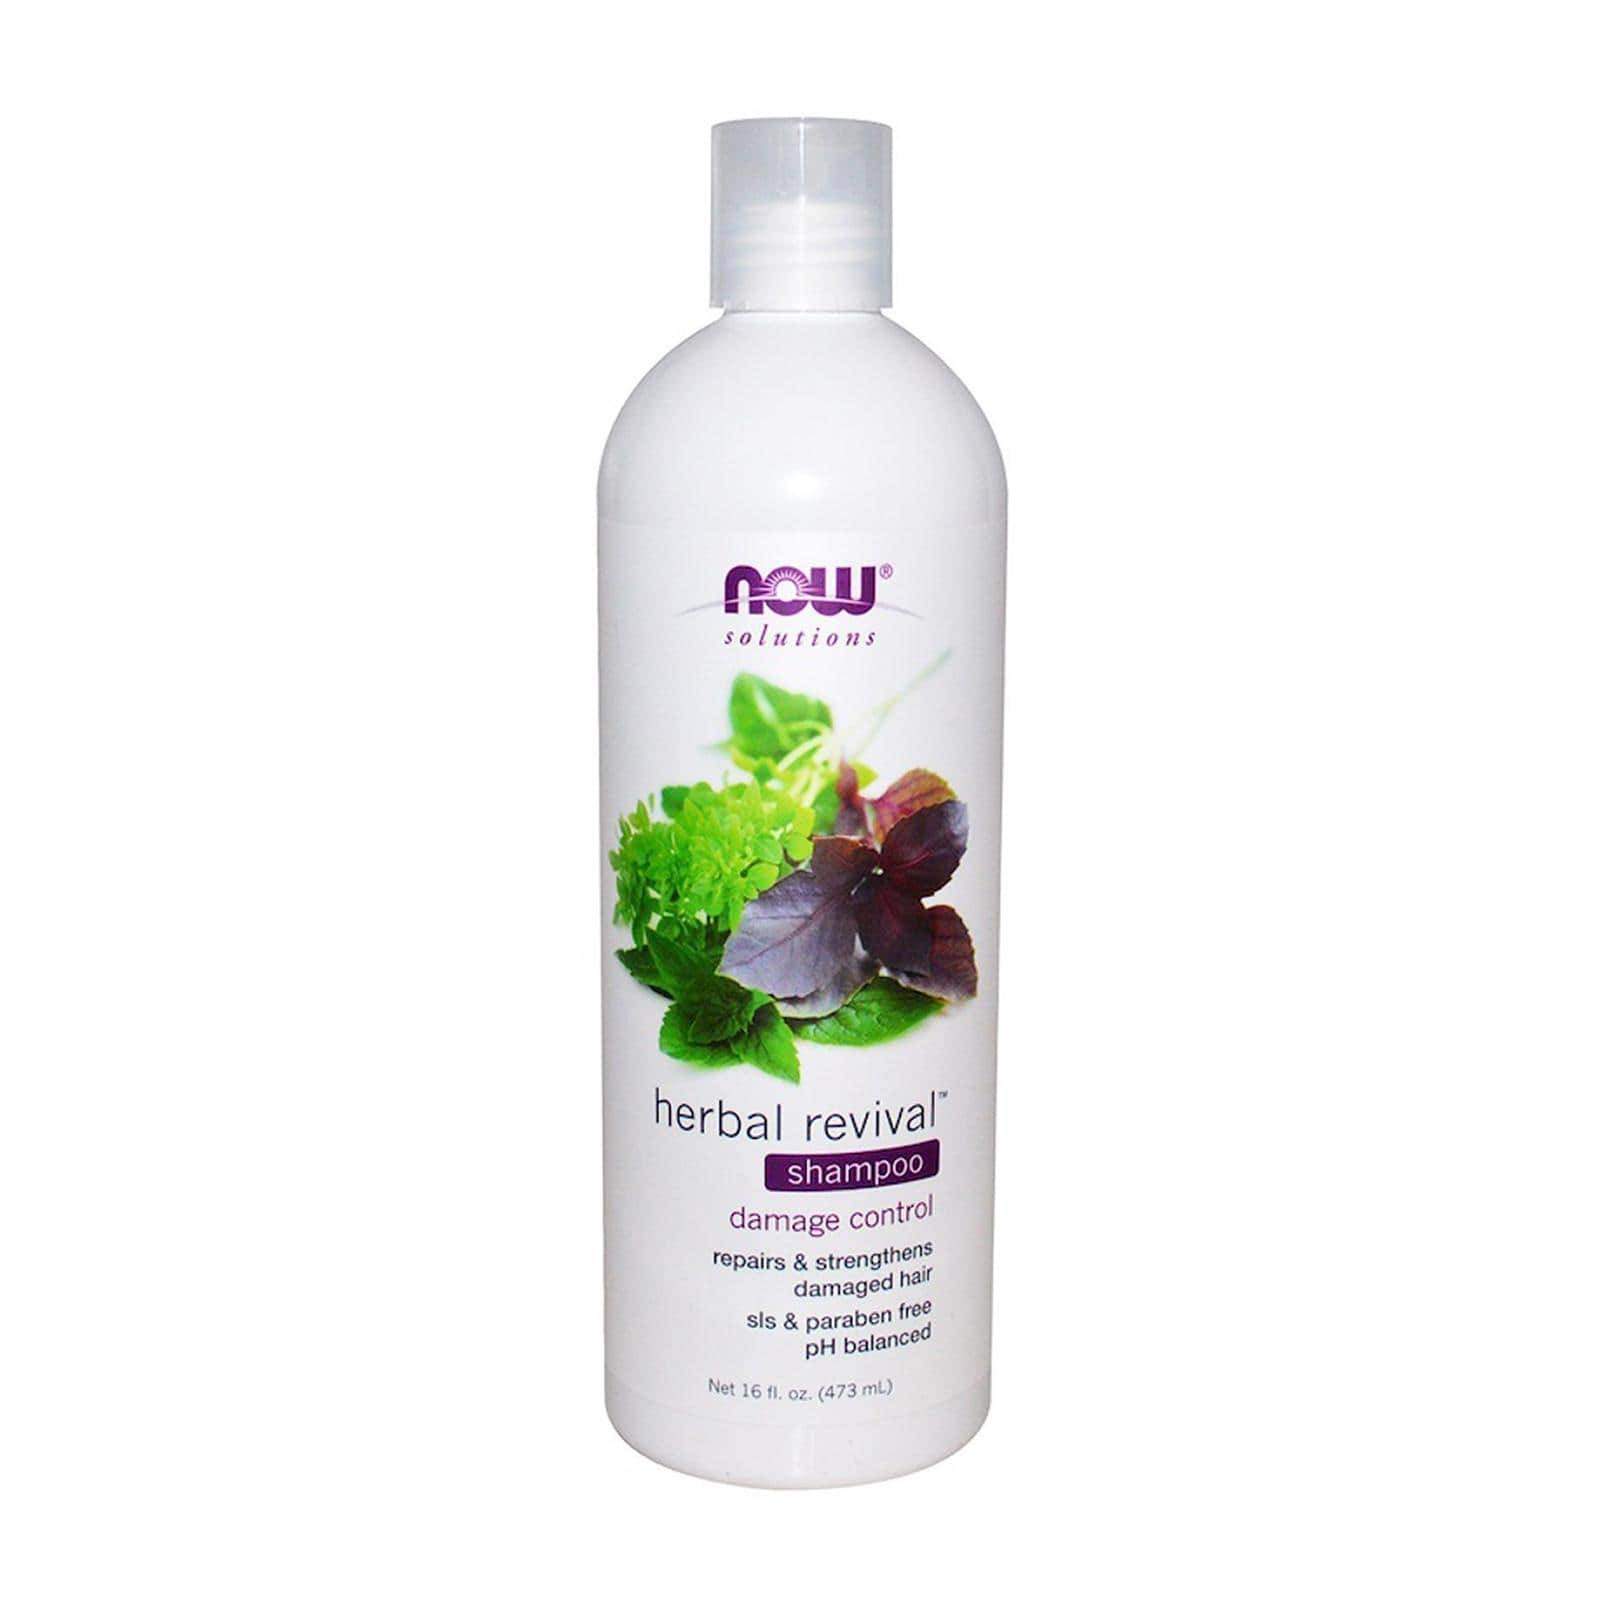 Now Foods Solutions Herbal Revival Shampoo - 16oz